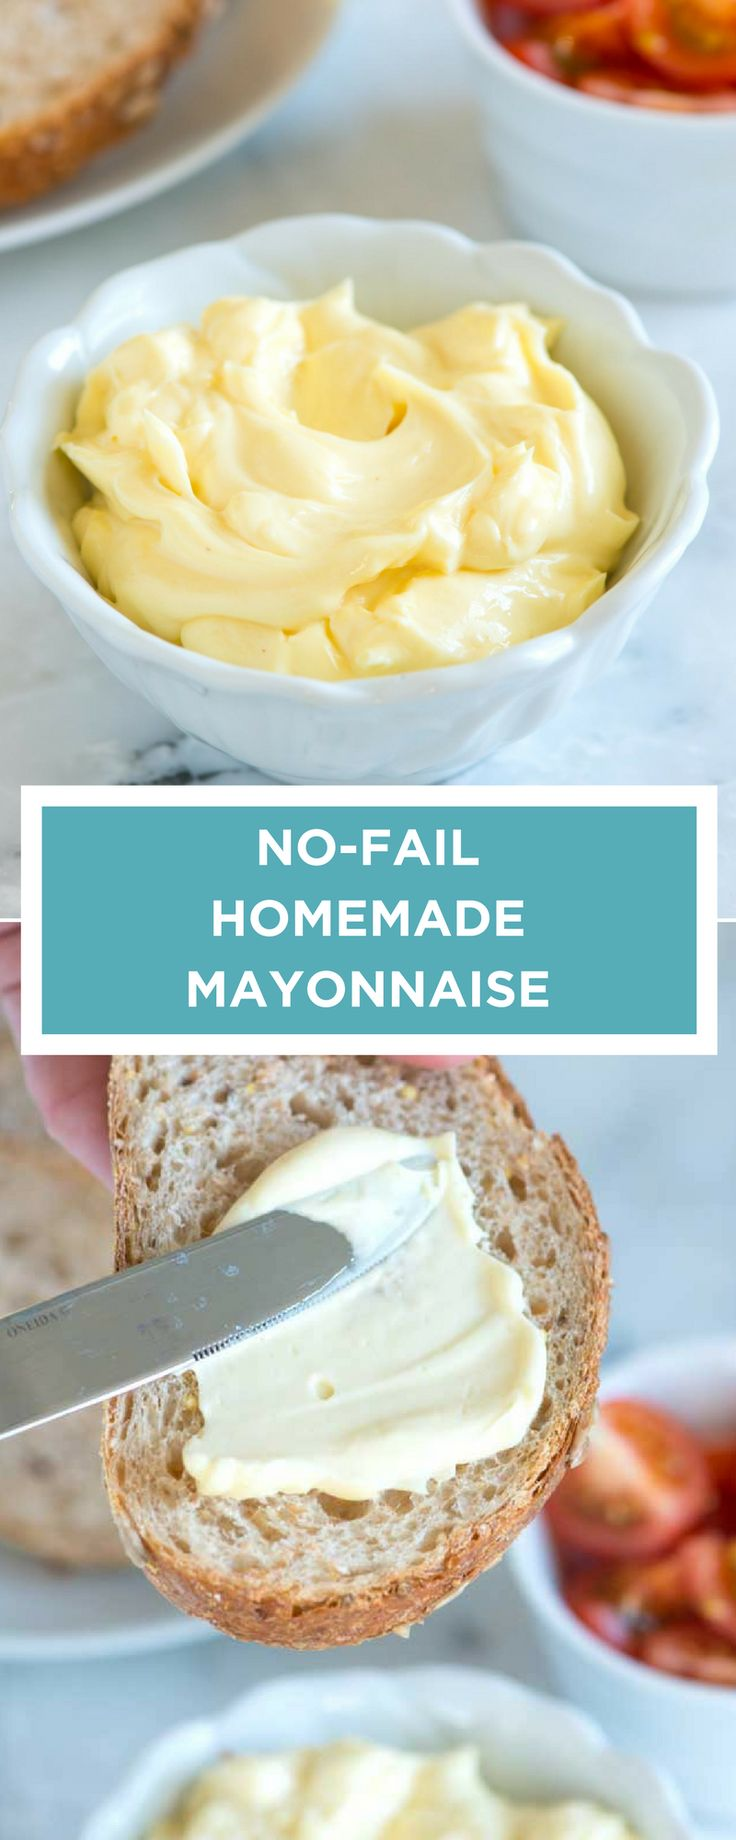 Using whole eggs instead of just the yolk, makes this homemade mayonnaise recipe practically fail-proofand extra easy.